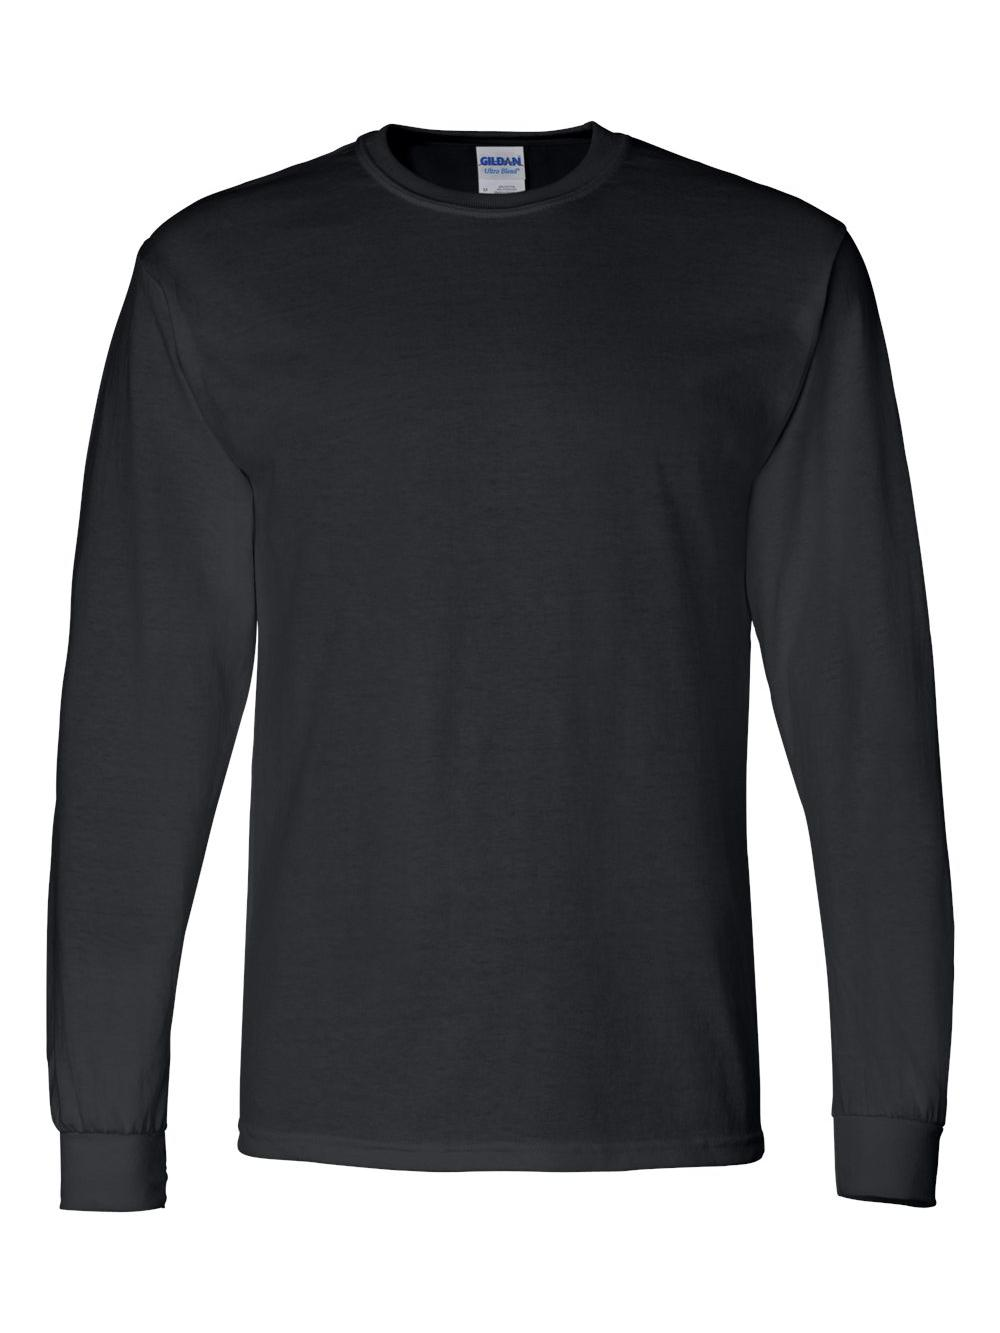 Gildan-DryBlend-50-50-Long-Sleeve-T-Shirt-8400 thumbnail 6